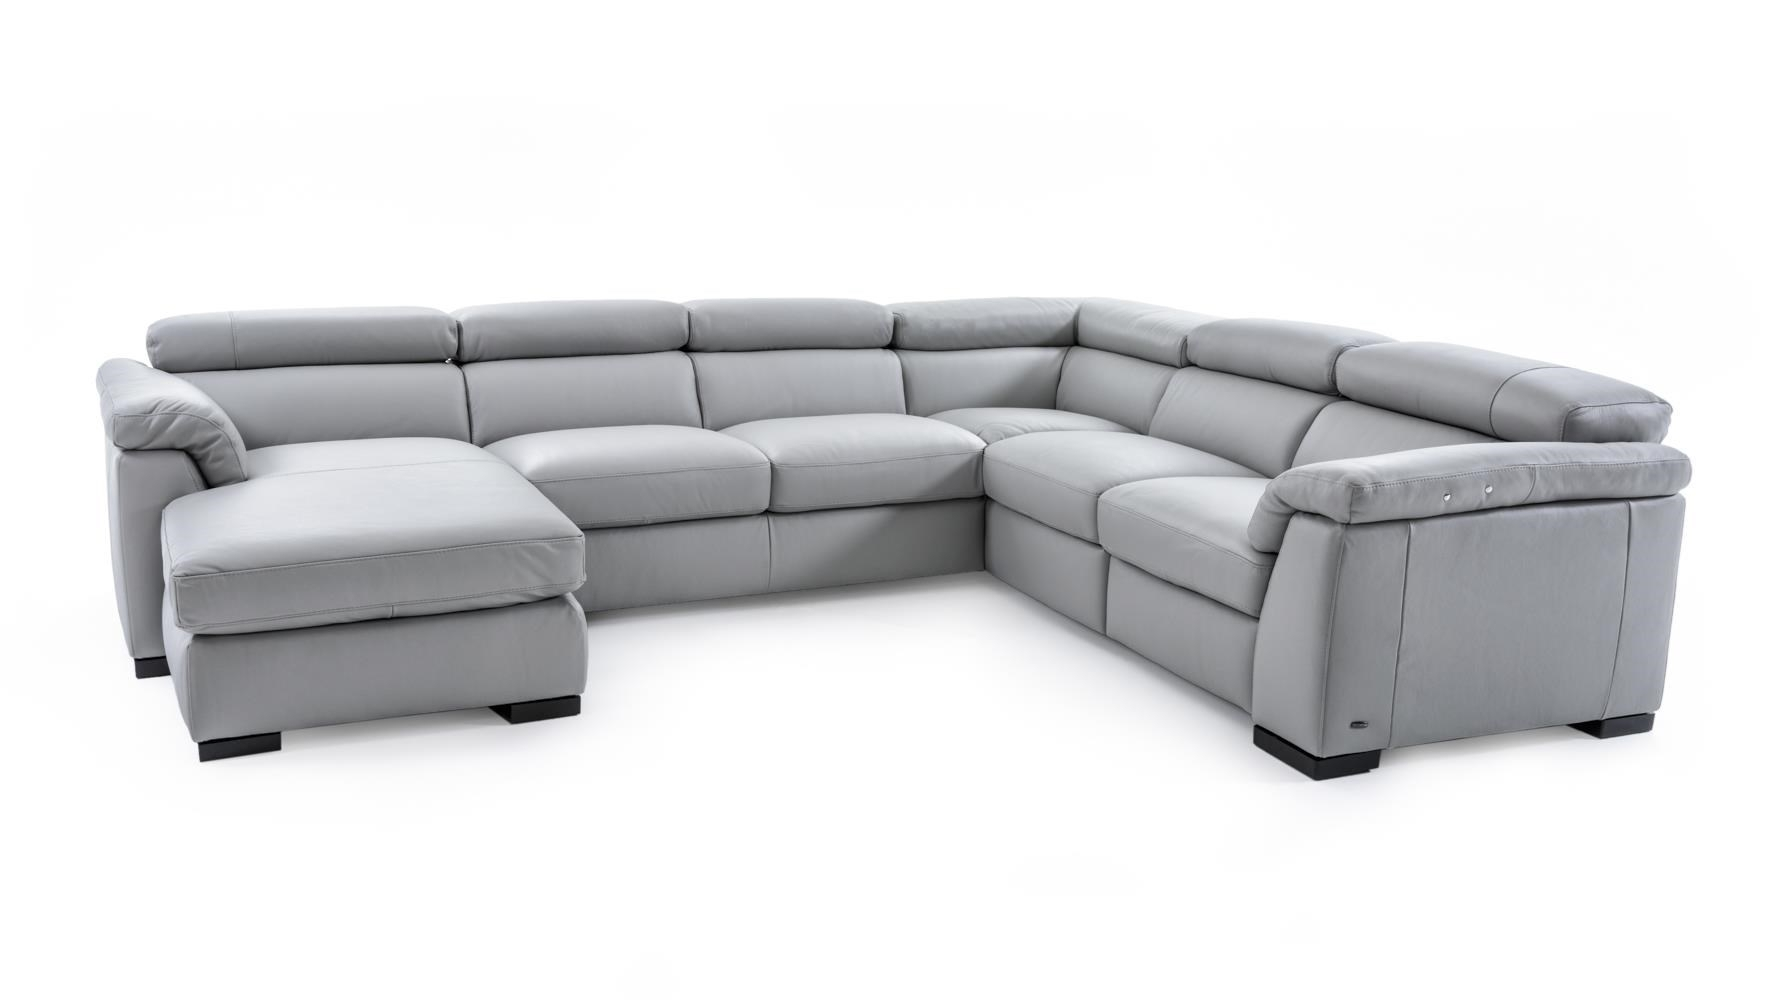 Natuzzi Editions B634 B634 Sect 1 Gray Contemporary Leather With Regard To Natuzzi Sectional Sofas (View 6 of 10)